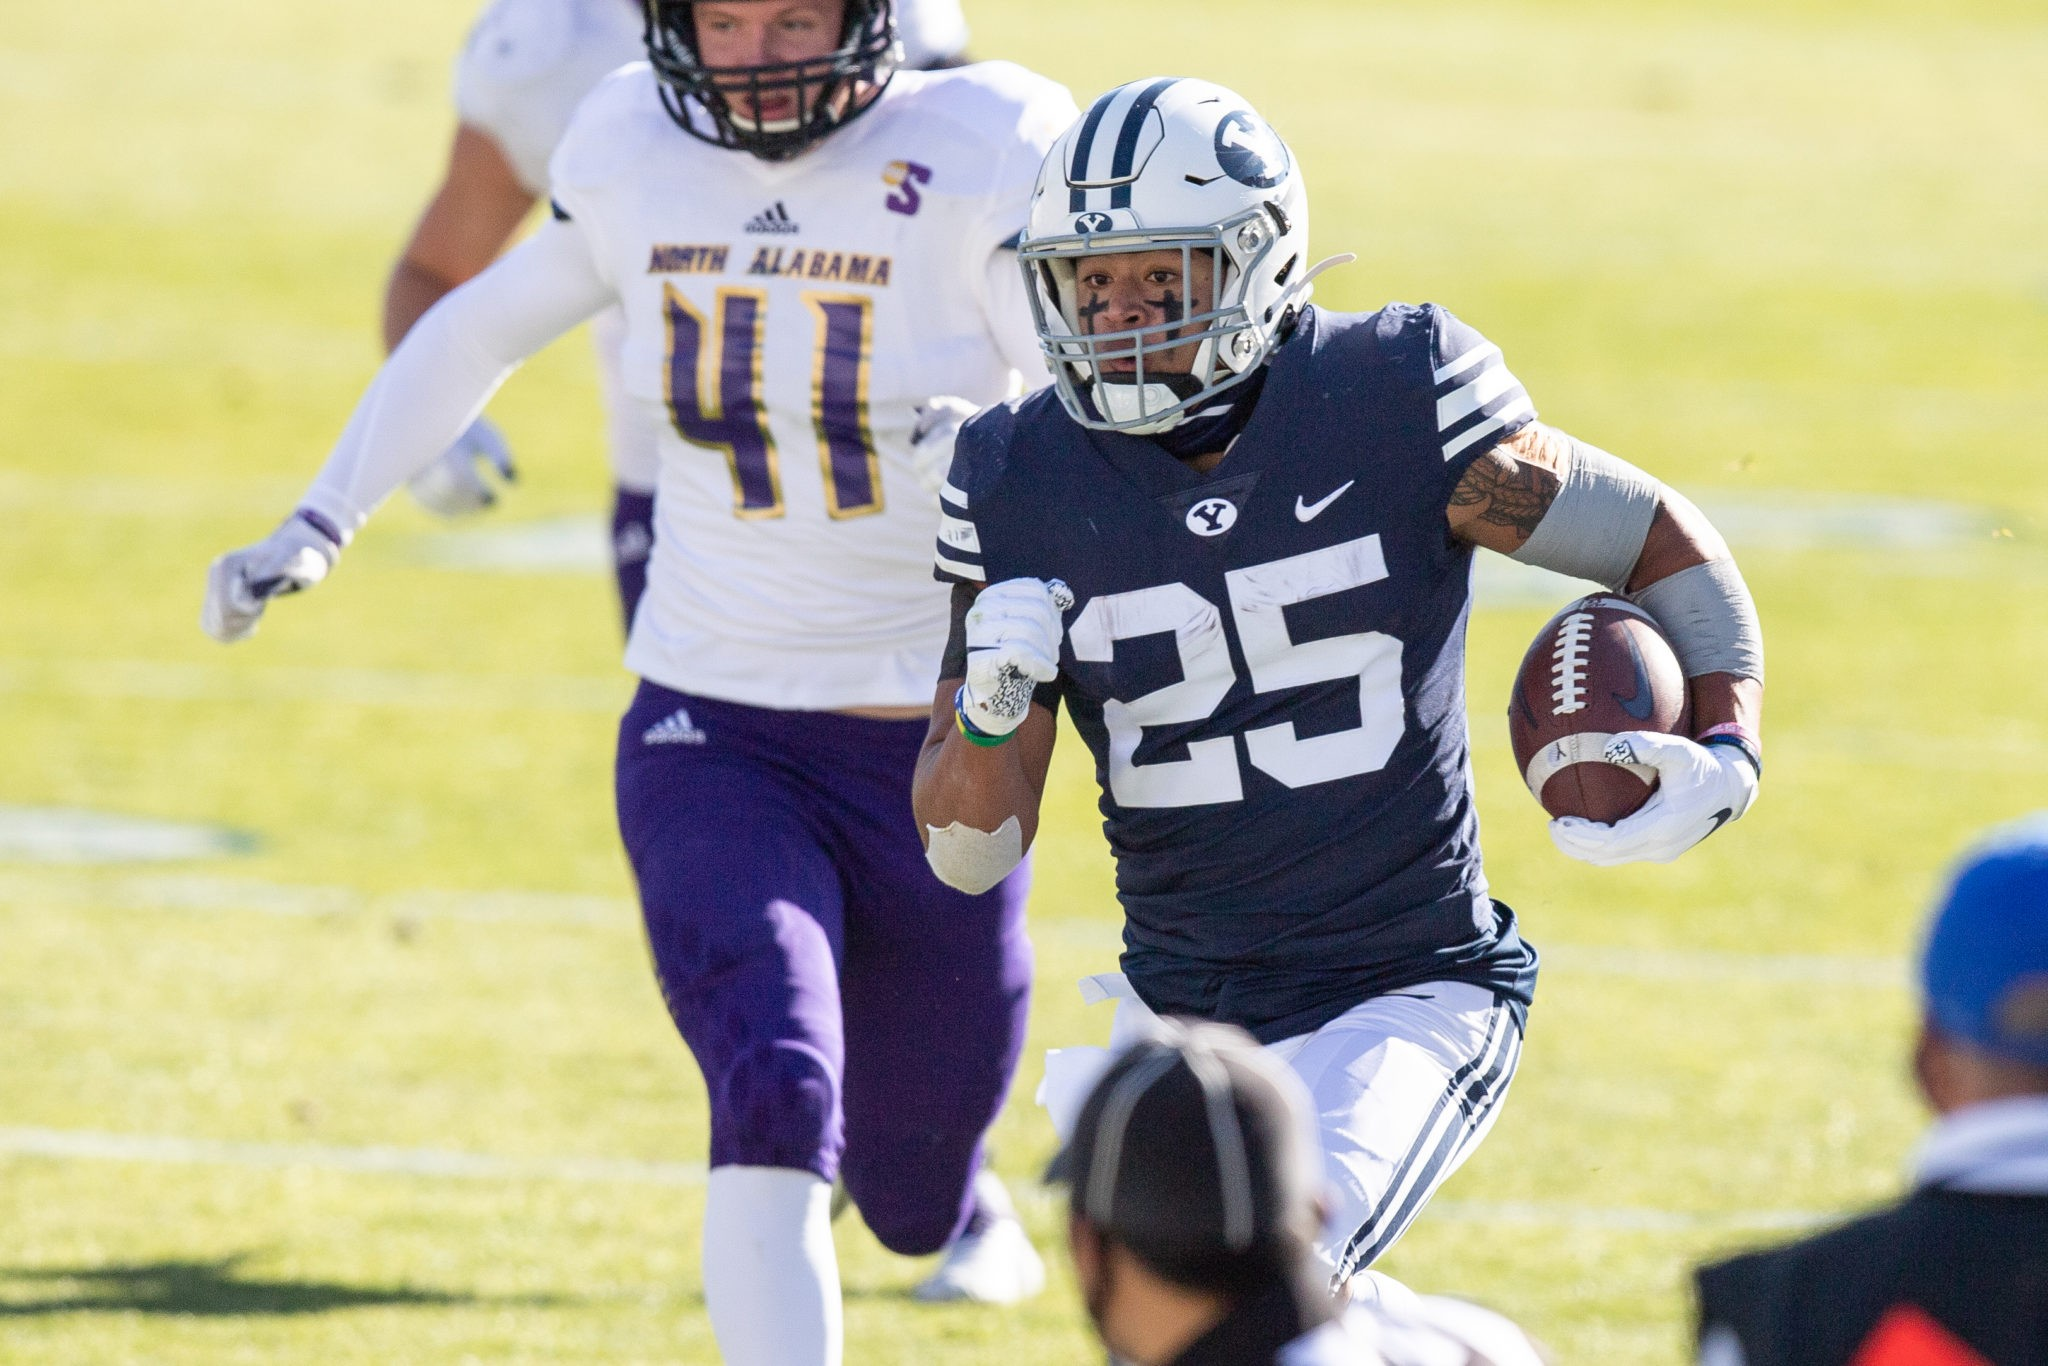 'Any team, any time, any place,' says Wilson in 66-14 win over North Alabama